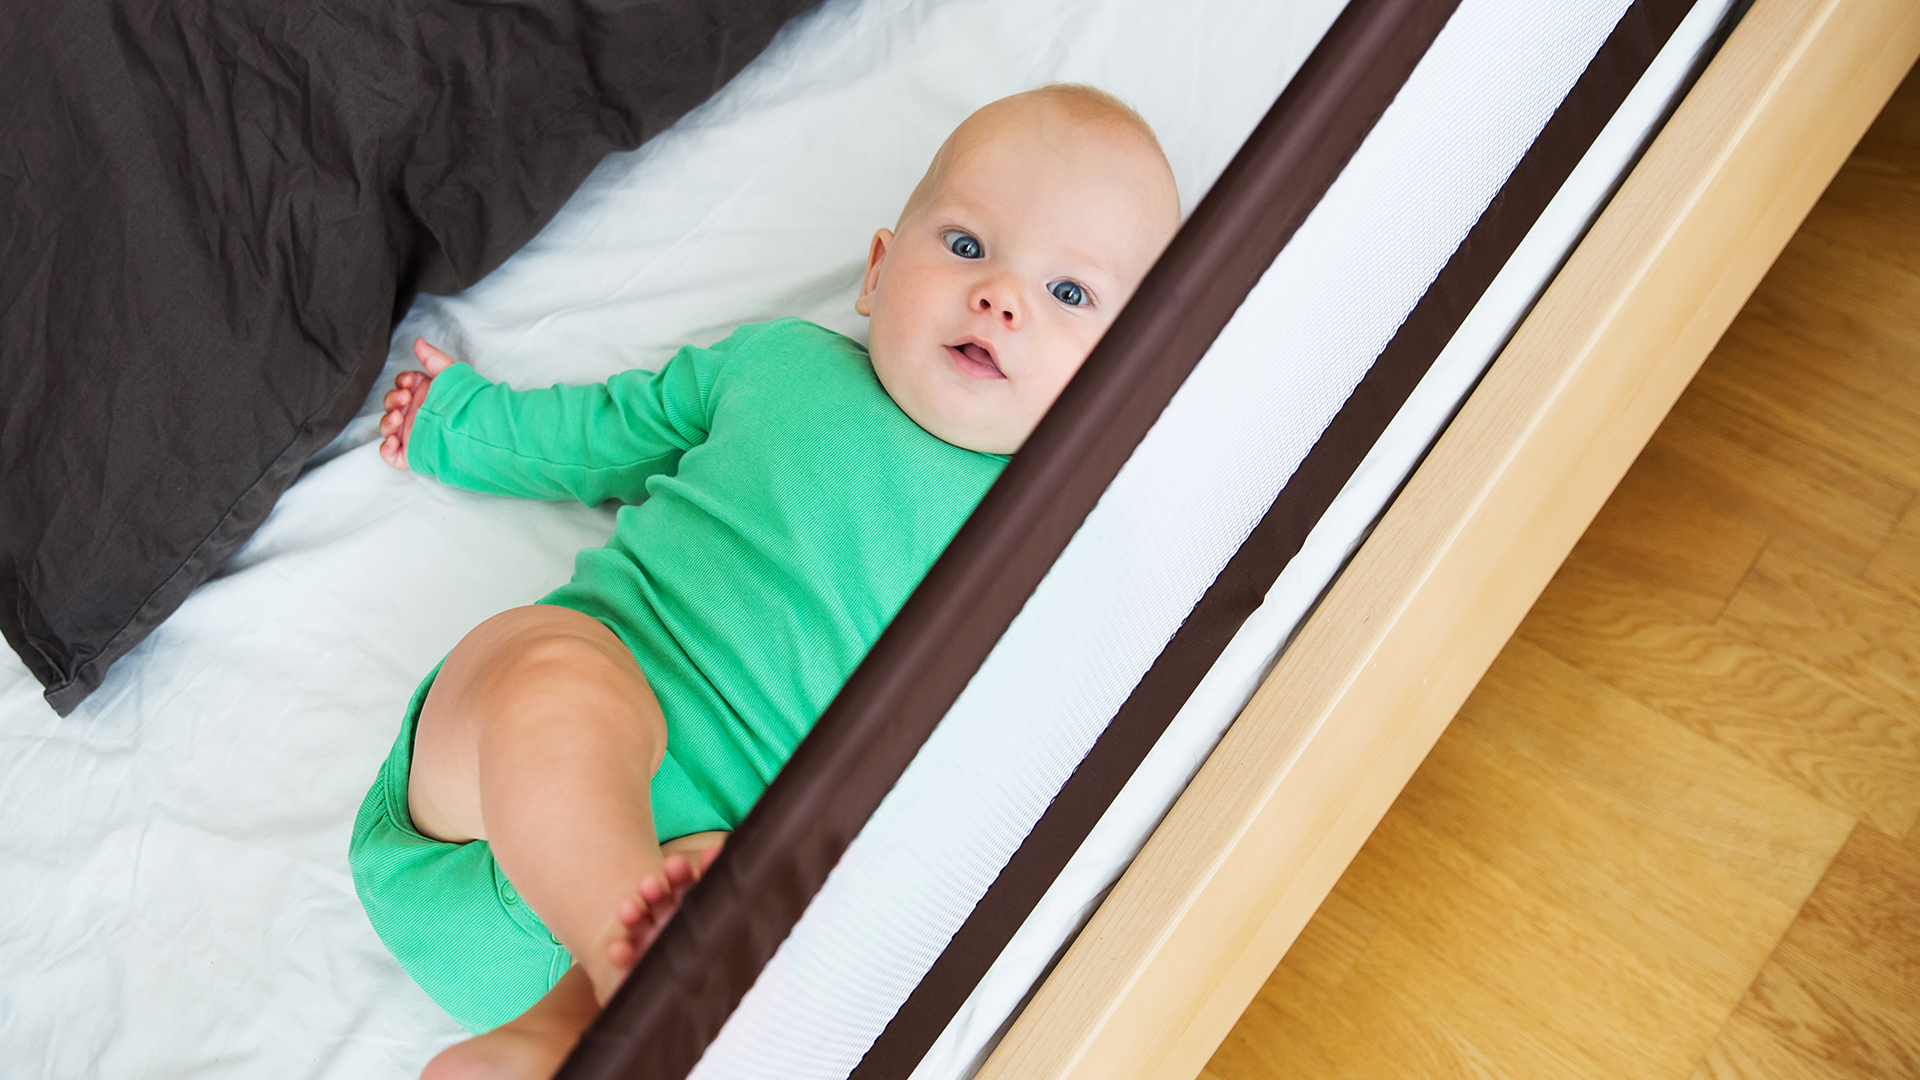 Sturdy Bed Rail Guards for Kids to Keep Them Safe While Sleeping